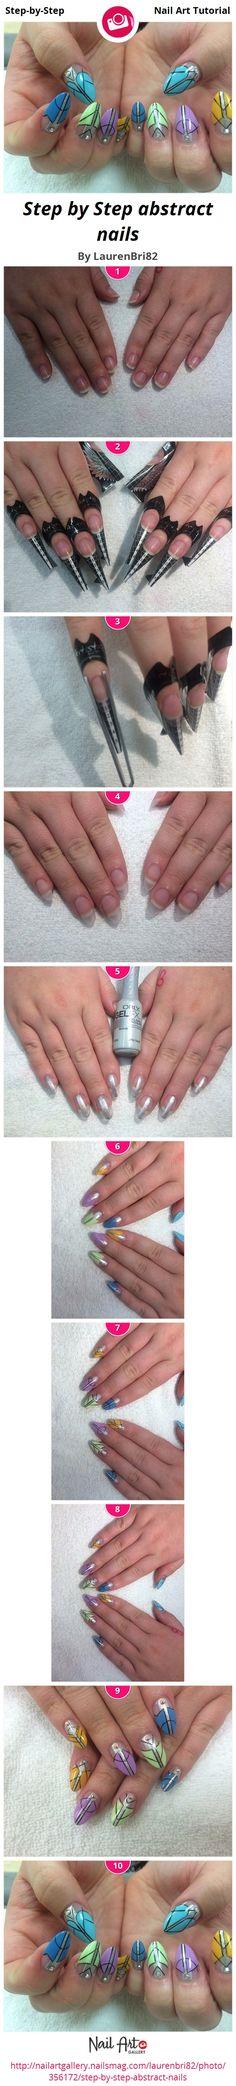 Step by Step abstract nails by LaurenBri82 from Nail Art Gallery